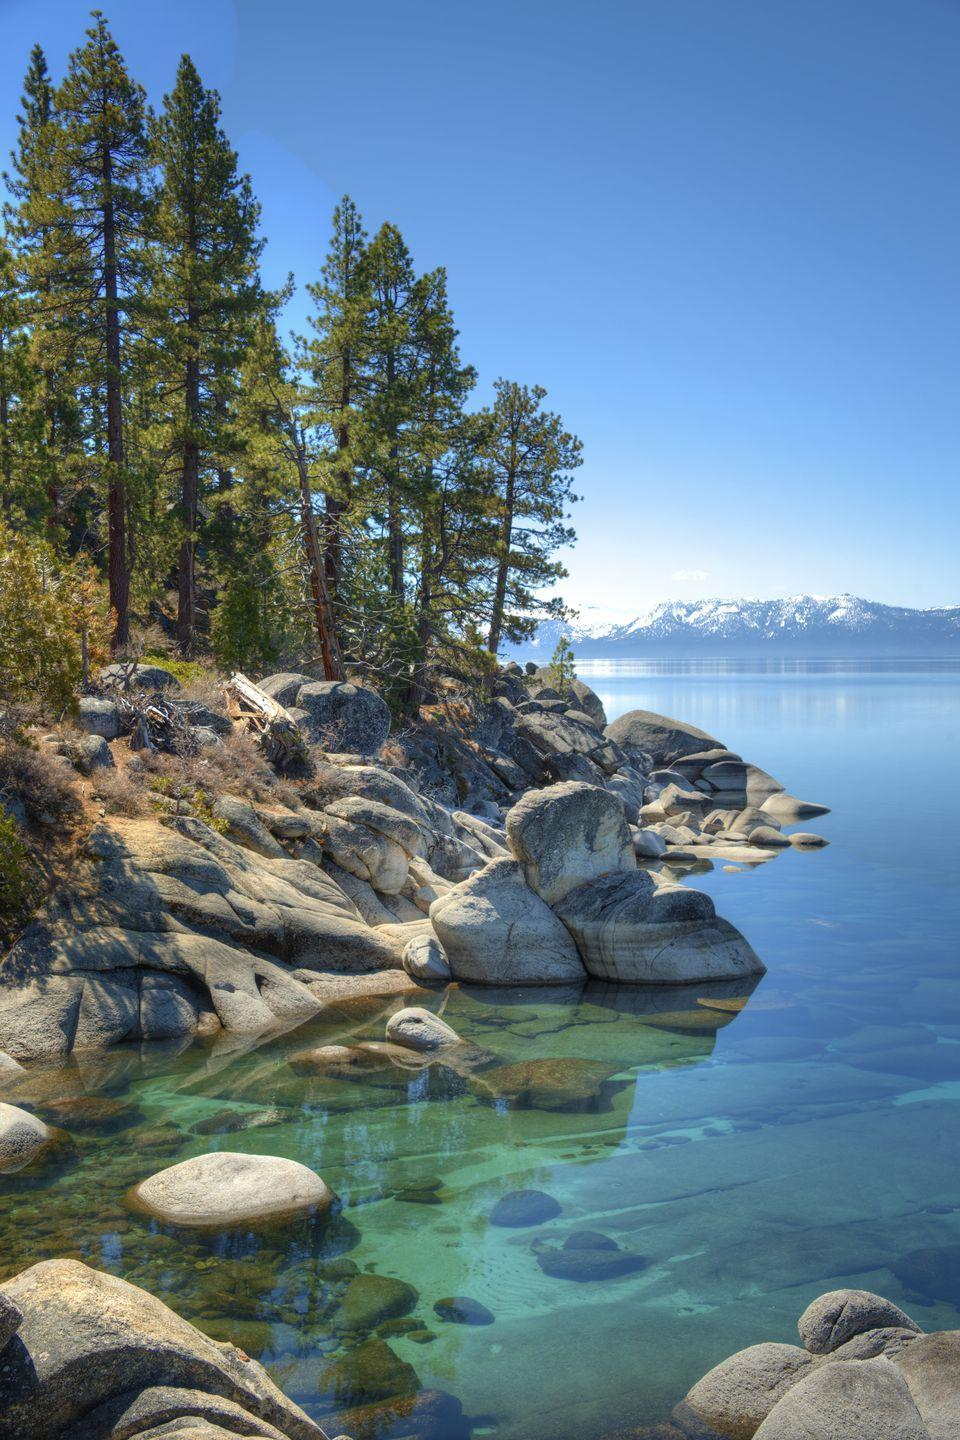 """<p><strong>Where: </strong>Lake Tahoe, California and Nevada</p><p><strong>Why We Love It: </strong>Surrounded by the Sierra Nevada Mountains on all sides, Lake Tahoe's waters are so clear you can see 70 feet deep.</p><p><strong>RELATED:</strong> <a href=""""https://www.countryliving.com/life/travel/g4459/most-beautiful-lakes-in-america/"""" rel=""""nofollow noopener"""" target=""""_blank"""" data-ylk=""""slk:The 50 Most Beautiful Lakes in America"""" class=""""link rapid-noclick-resp"""">The 50 Most Beautiful Lakes in America</a></p>"""